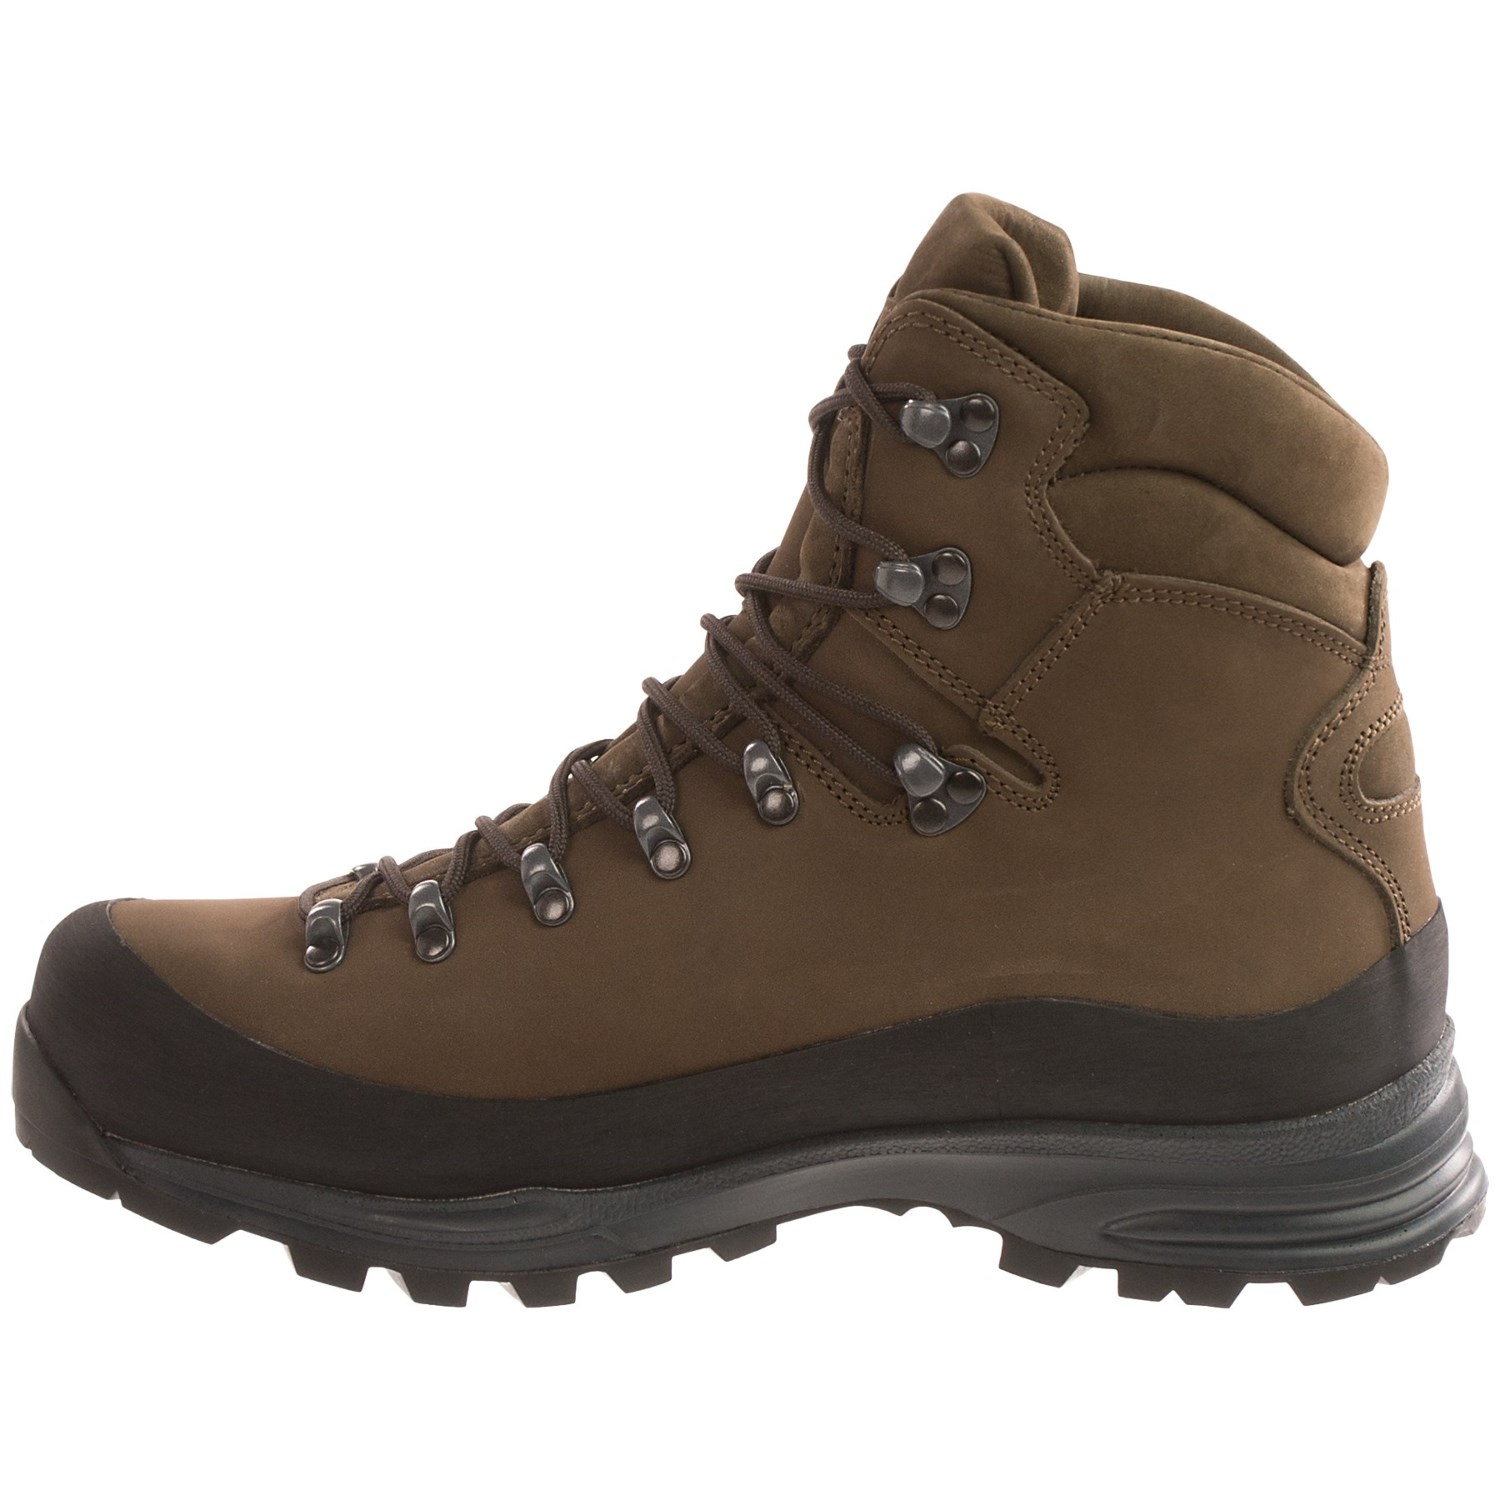 Kayland Globo Gore Tex 174 Hiking Boots For Men Save 43